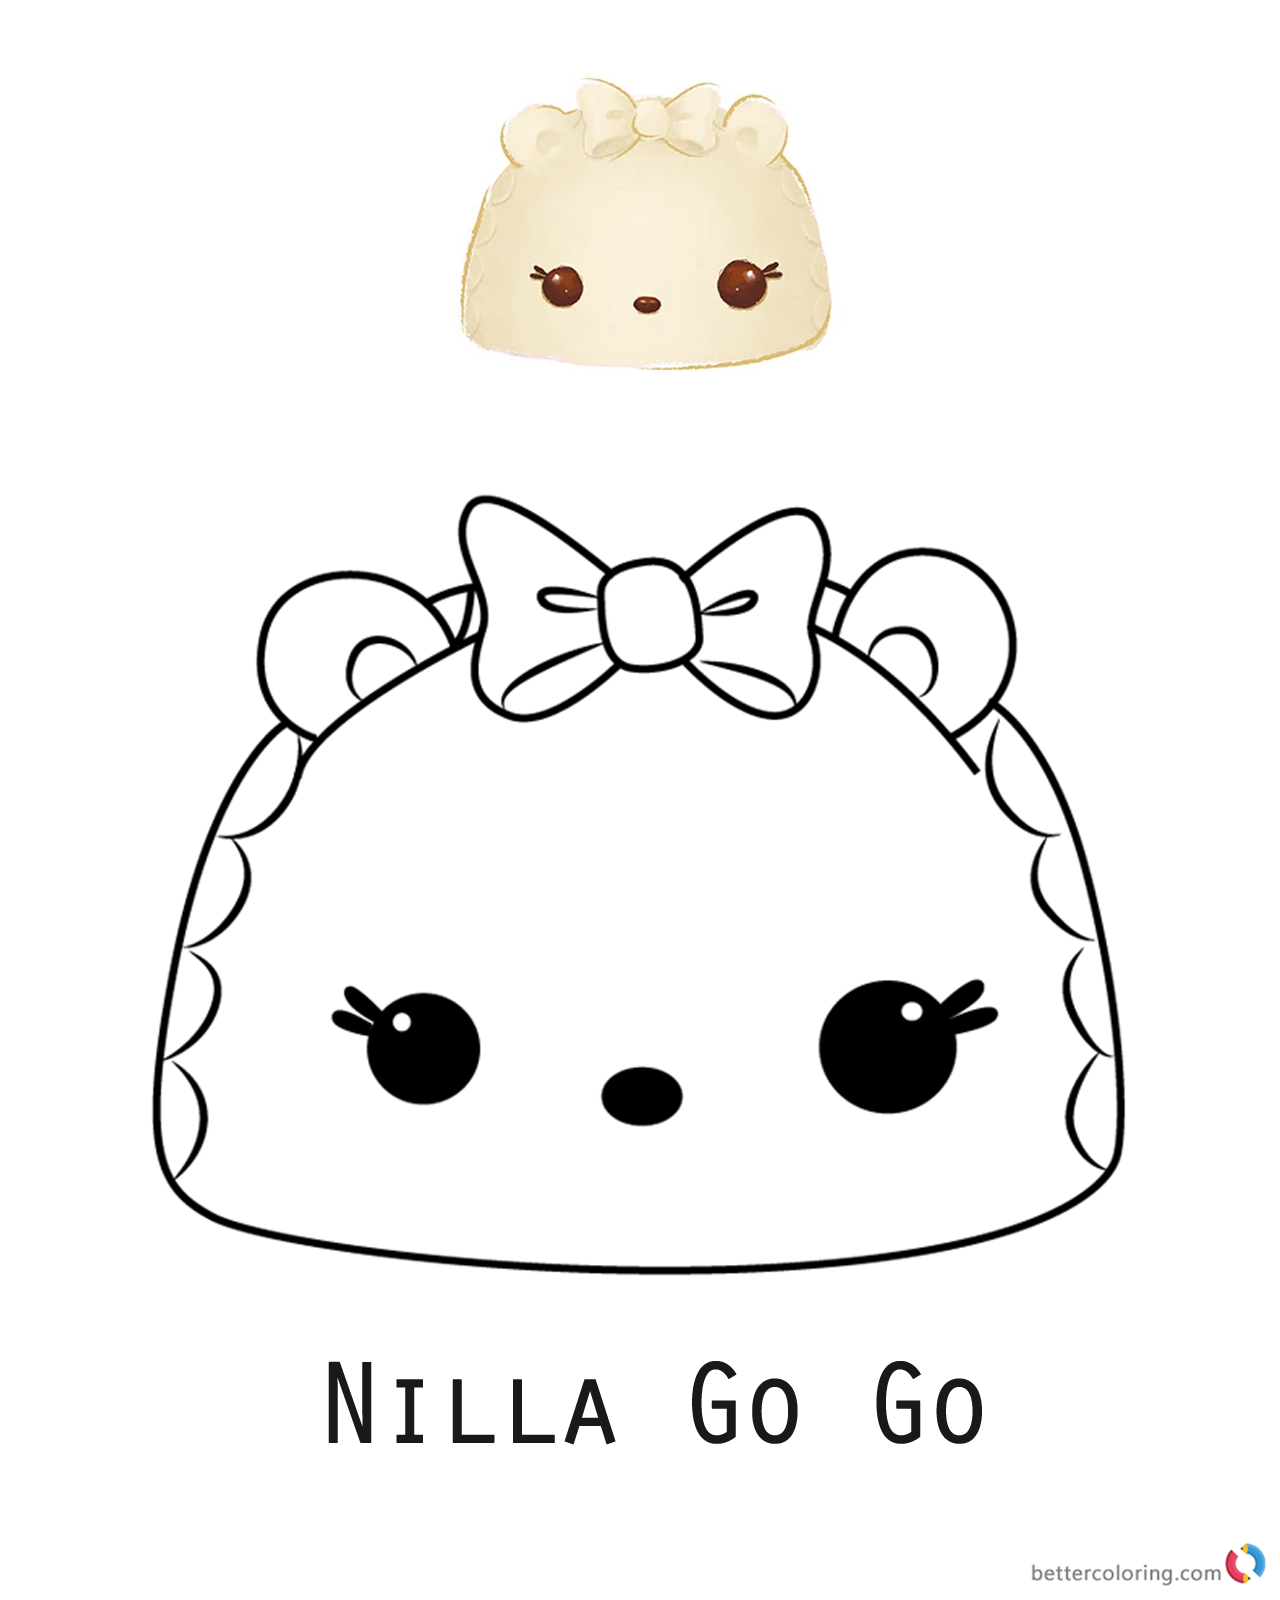 Nilla Go-Go from Num Noms coloring pages printable